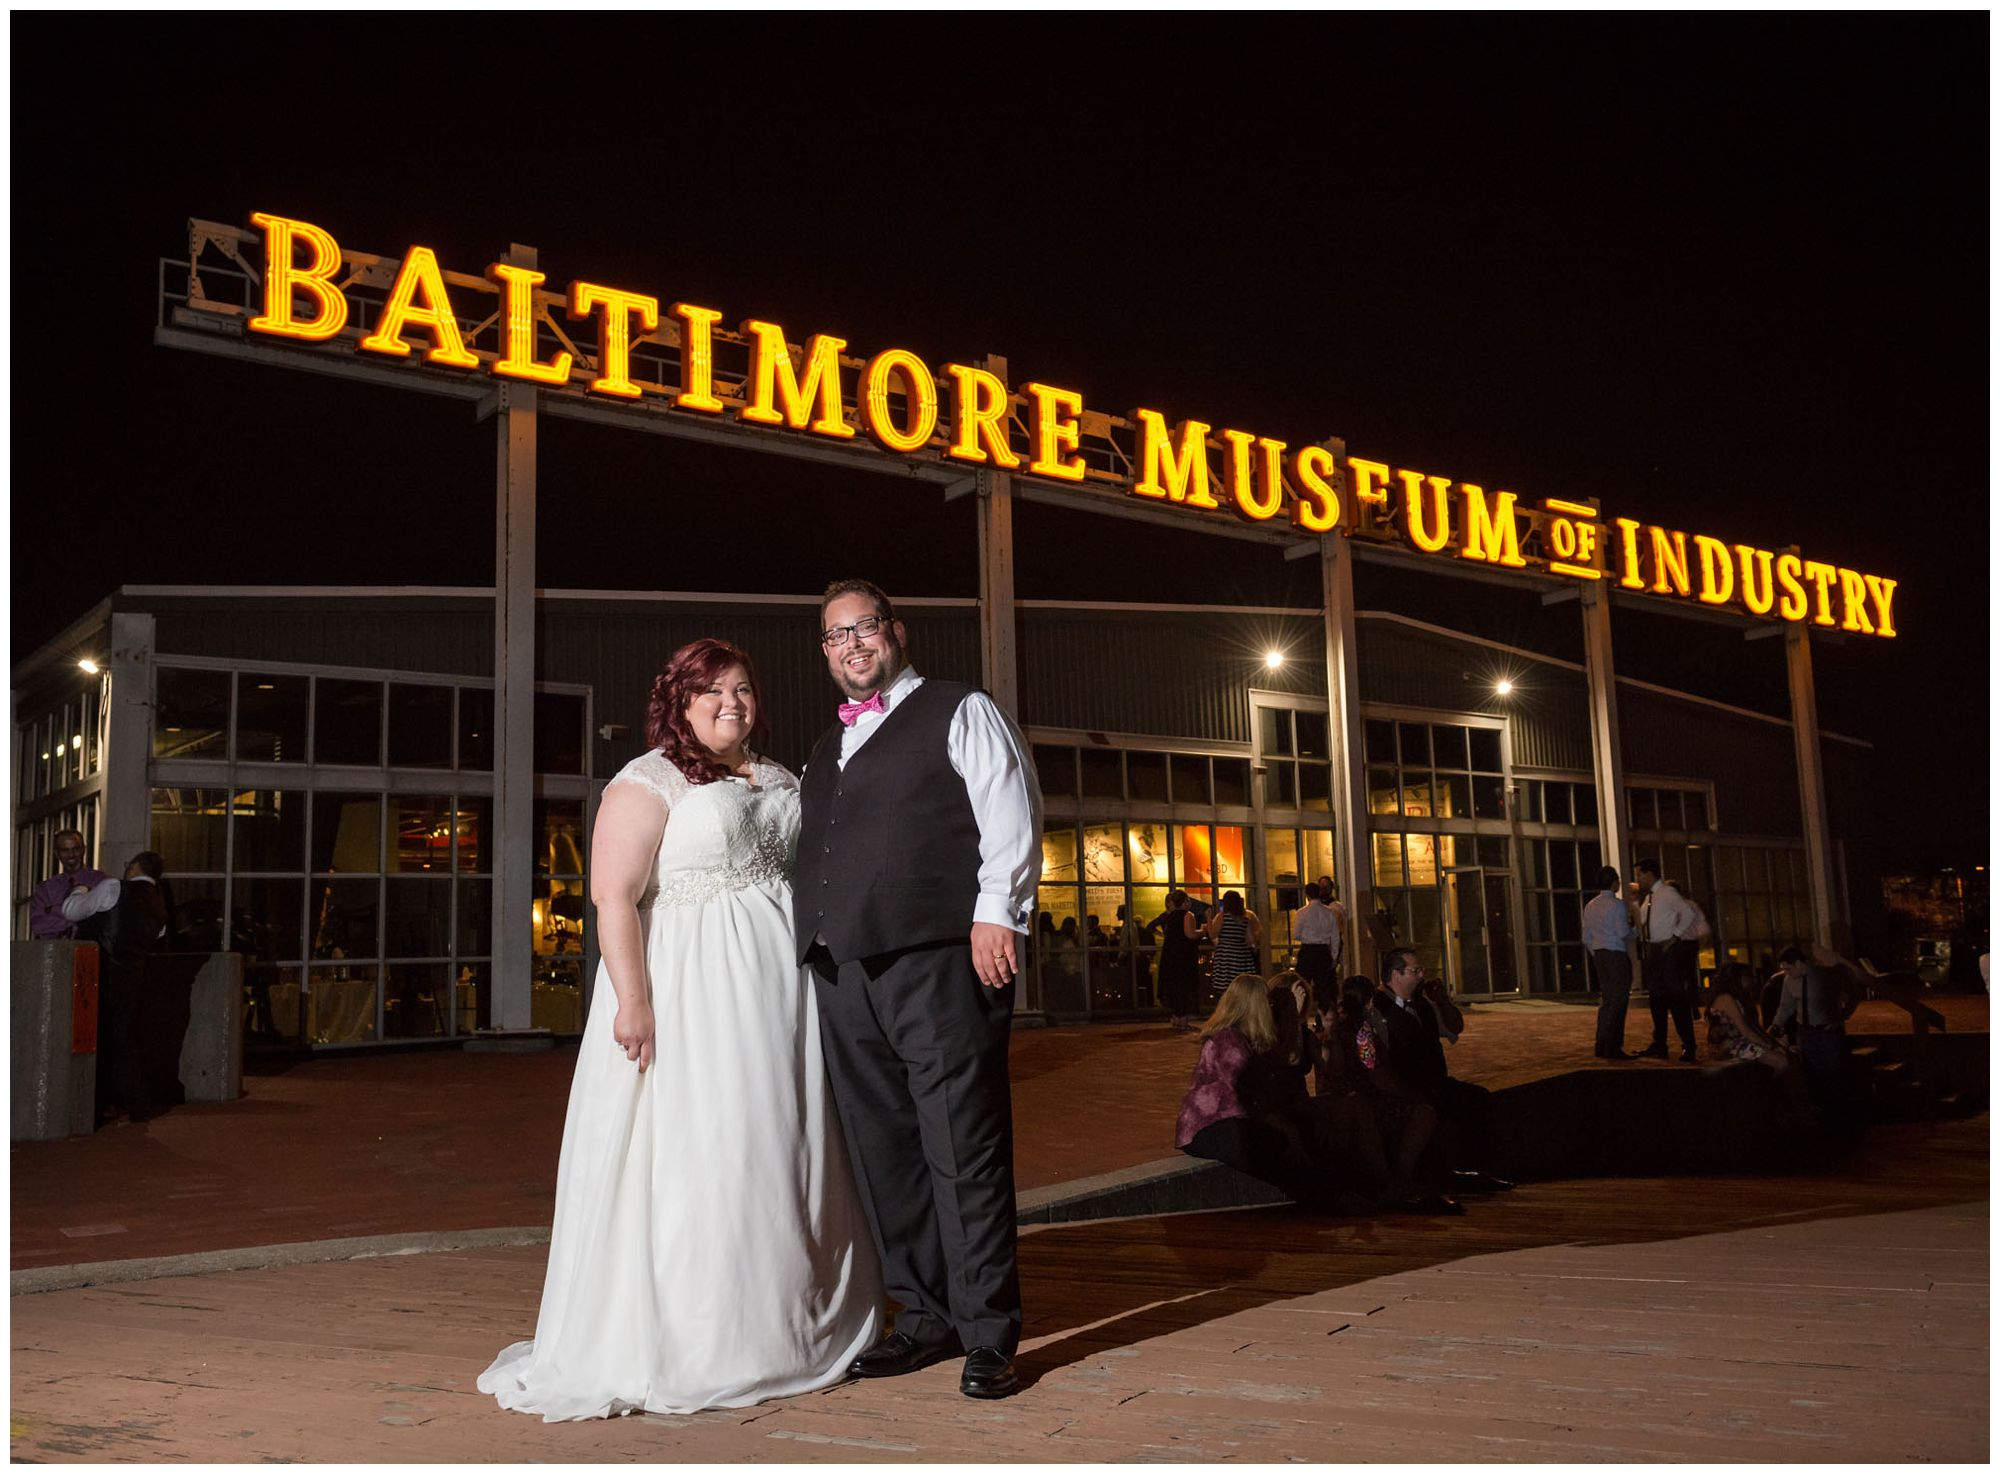 Bride and groom at nighttime in front of Baltimore Museum of Industry